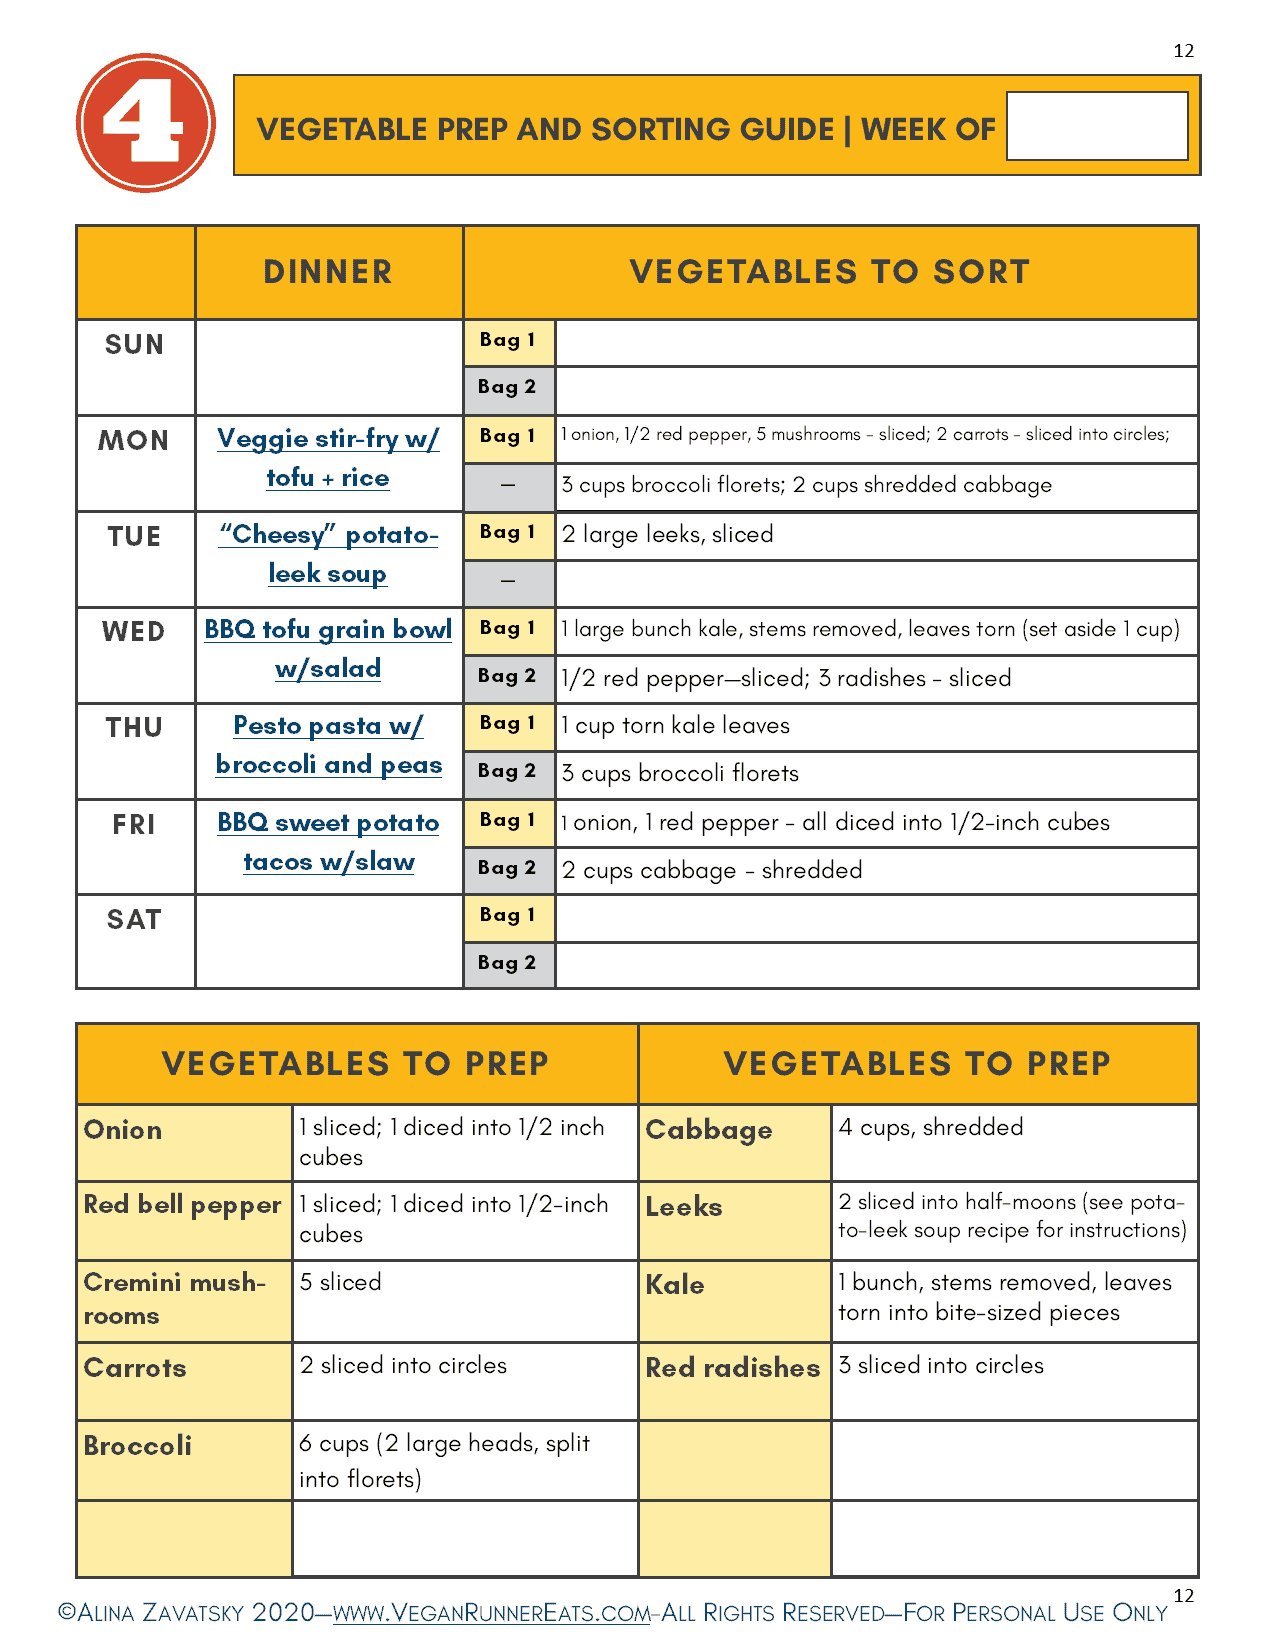 Vegetable Prep and Sorting Guide